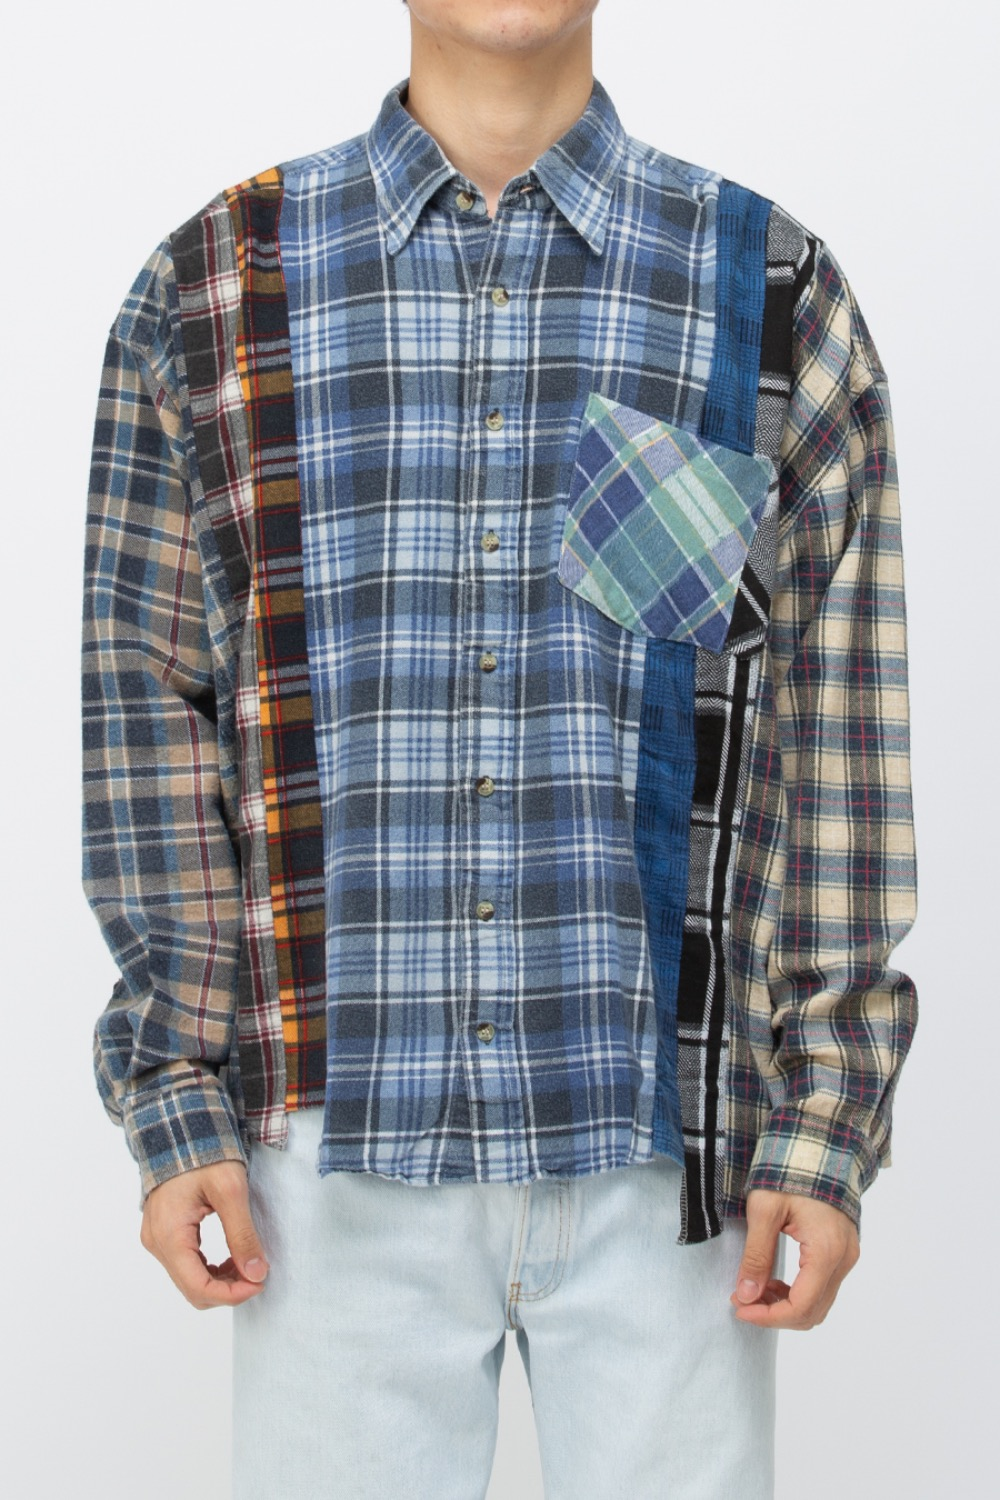 (WIDE-3)REBUILD BY NEEDLES FLANNEL SHIRT - 7CUTS WIDE SHIRT